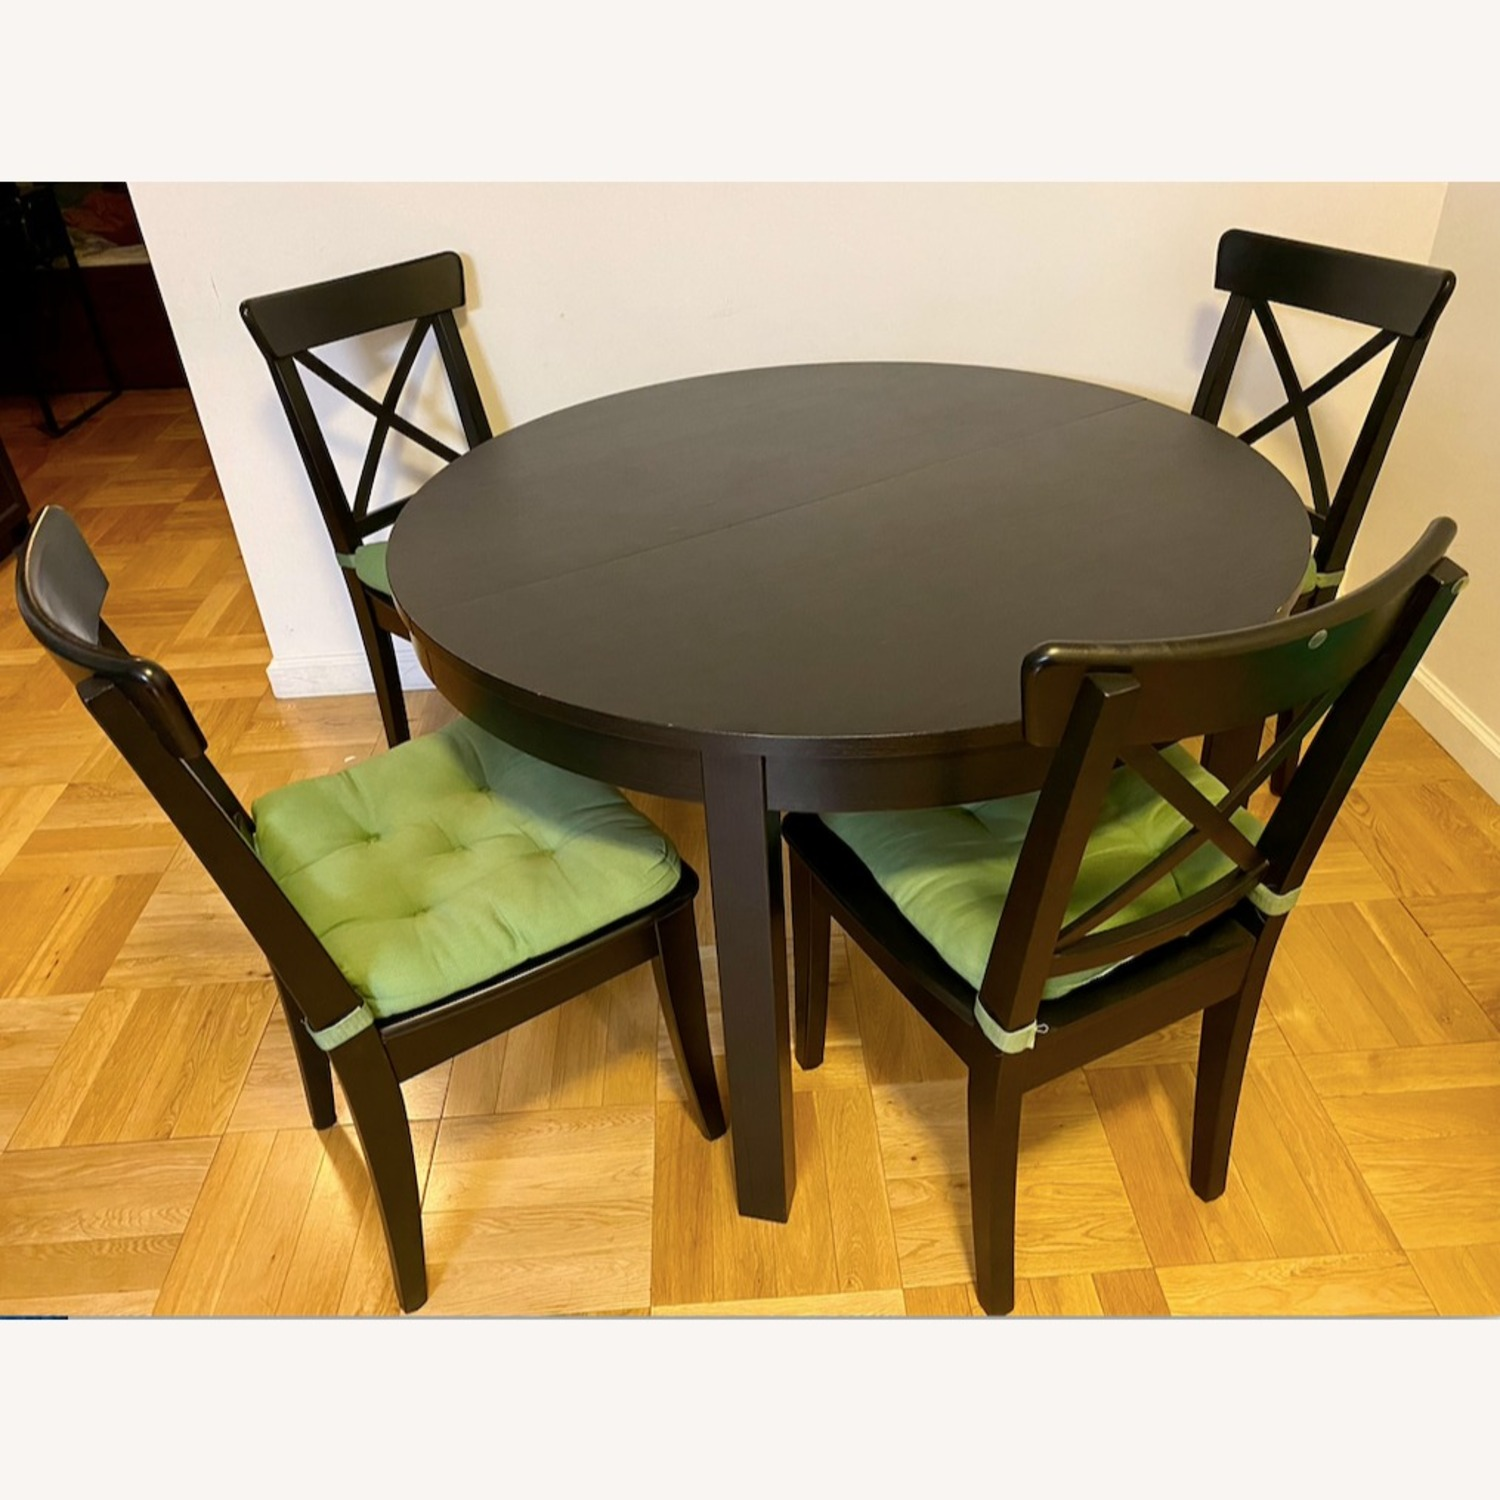 IKEA Dining Set - BJURSTA Table with INGOLF Chairs - image-1